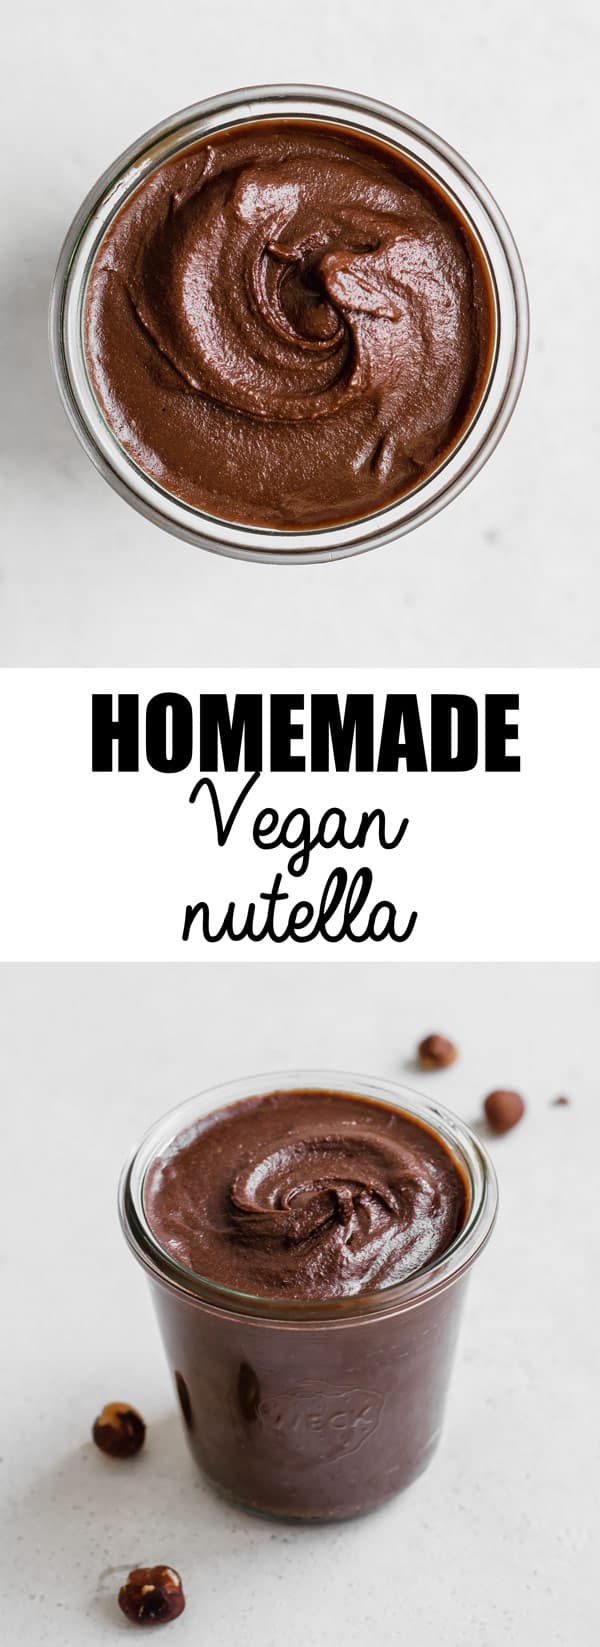 Homemade vegan nutella - Choosingchia